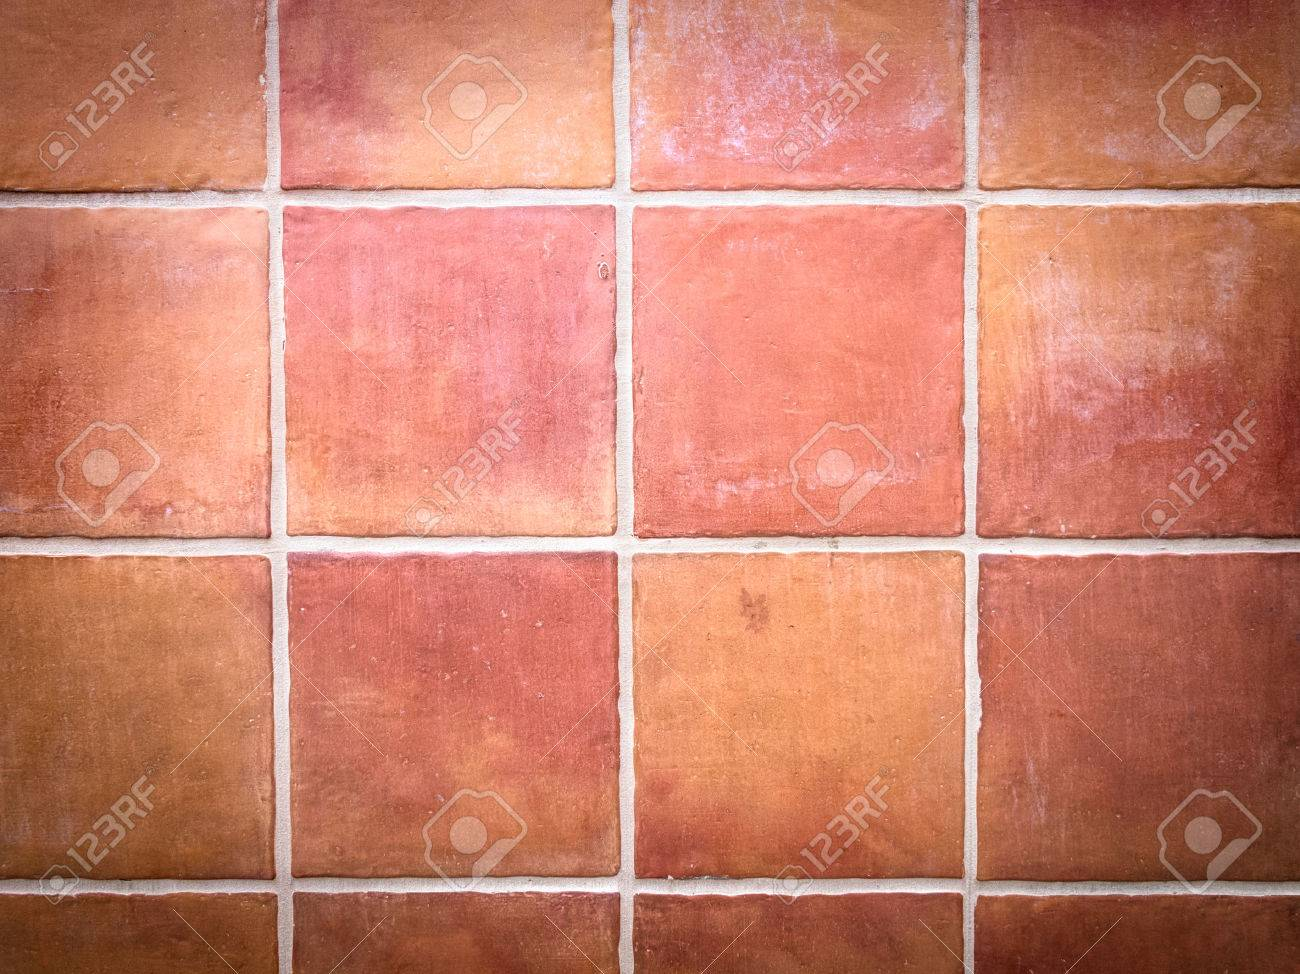 red stone wall tile with white grout